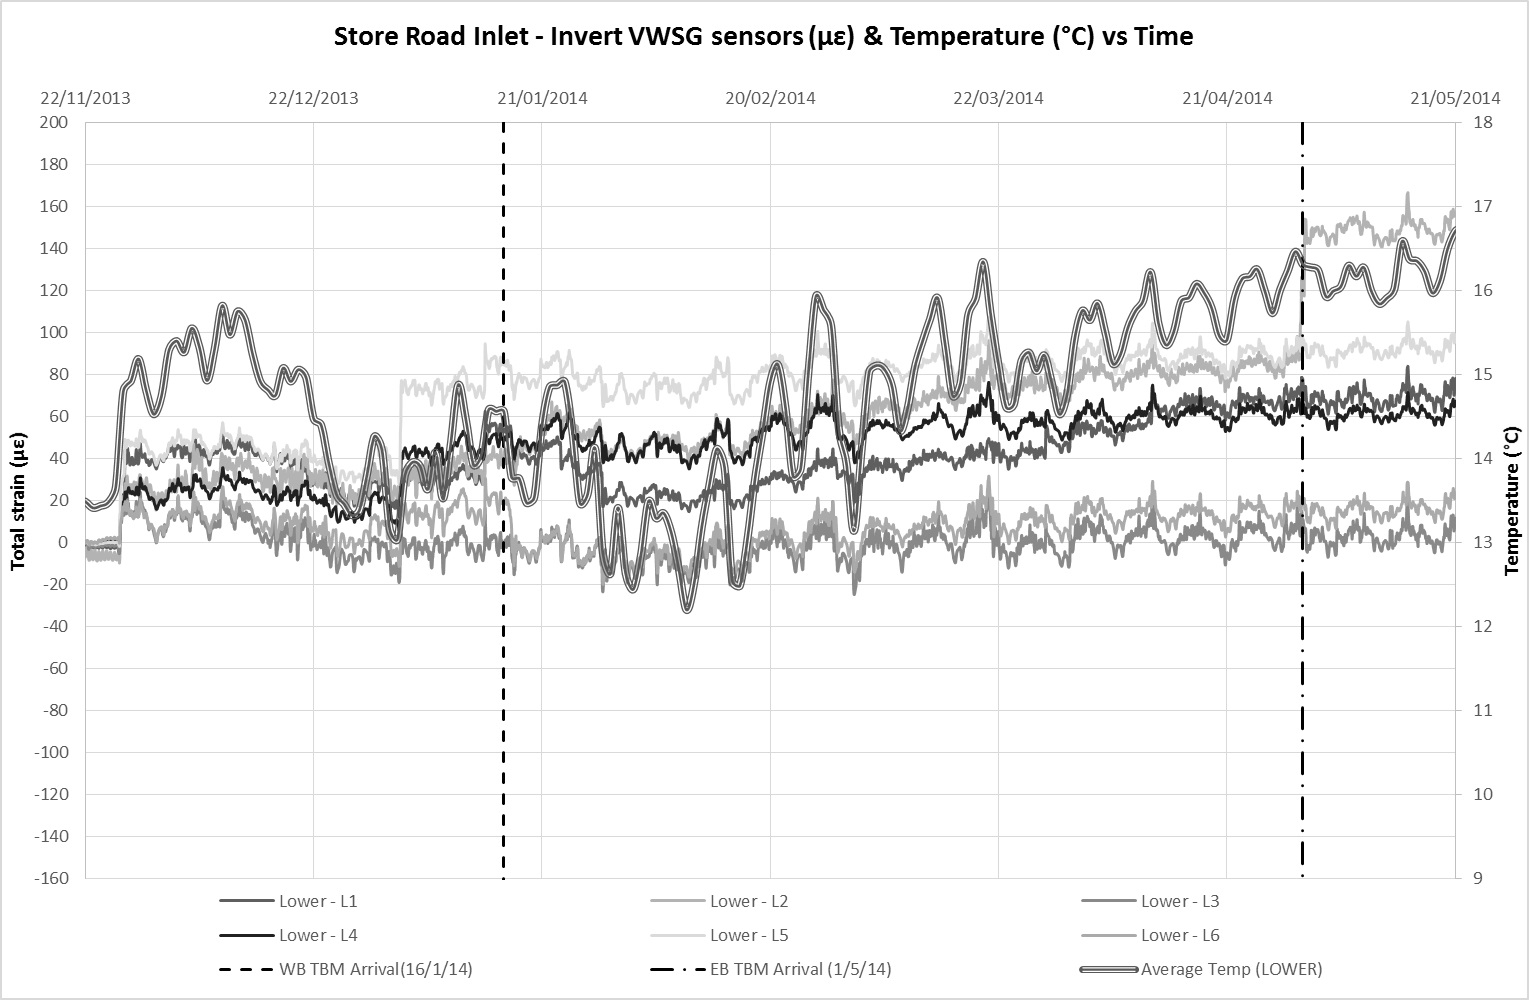 Figure 11b - VWSG with average temperature data at invert level against time